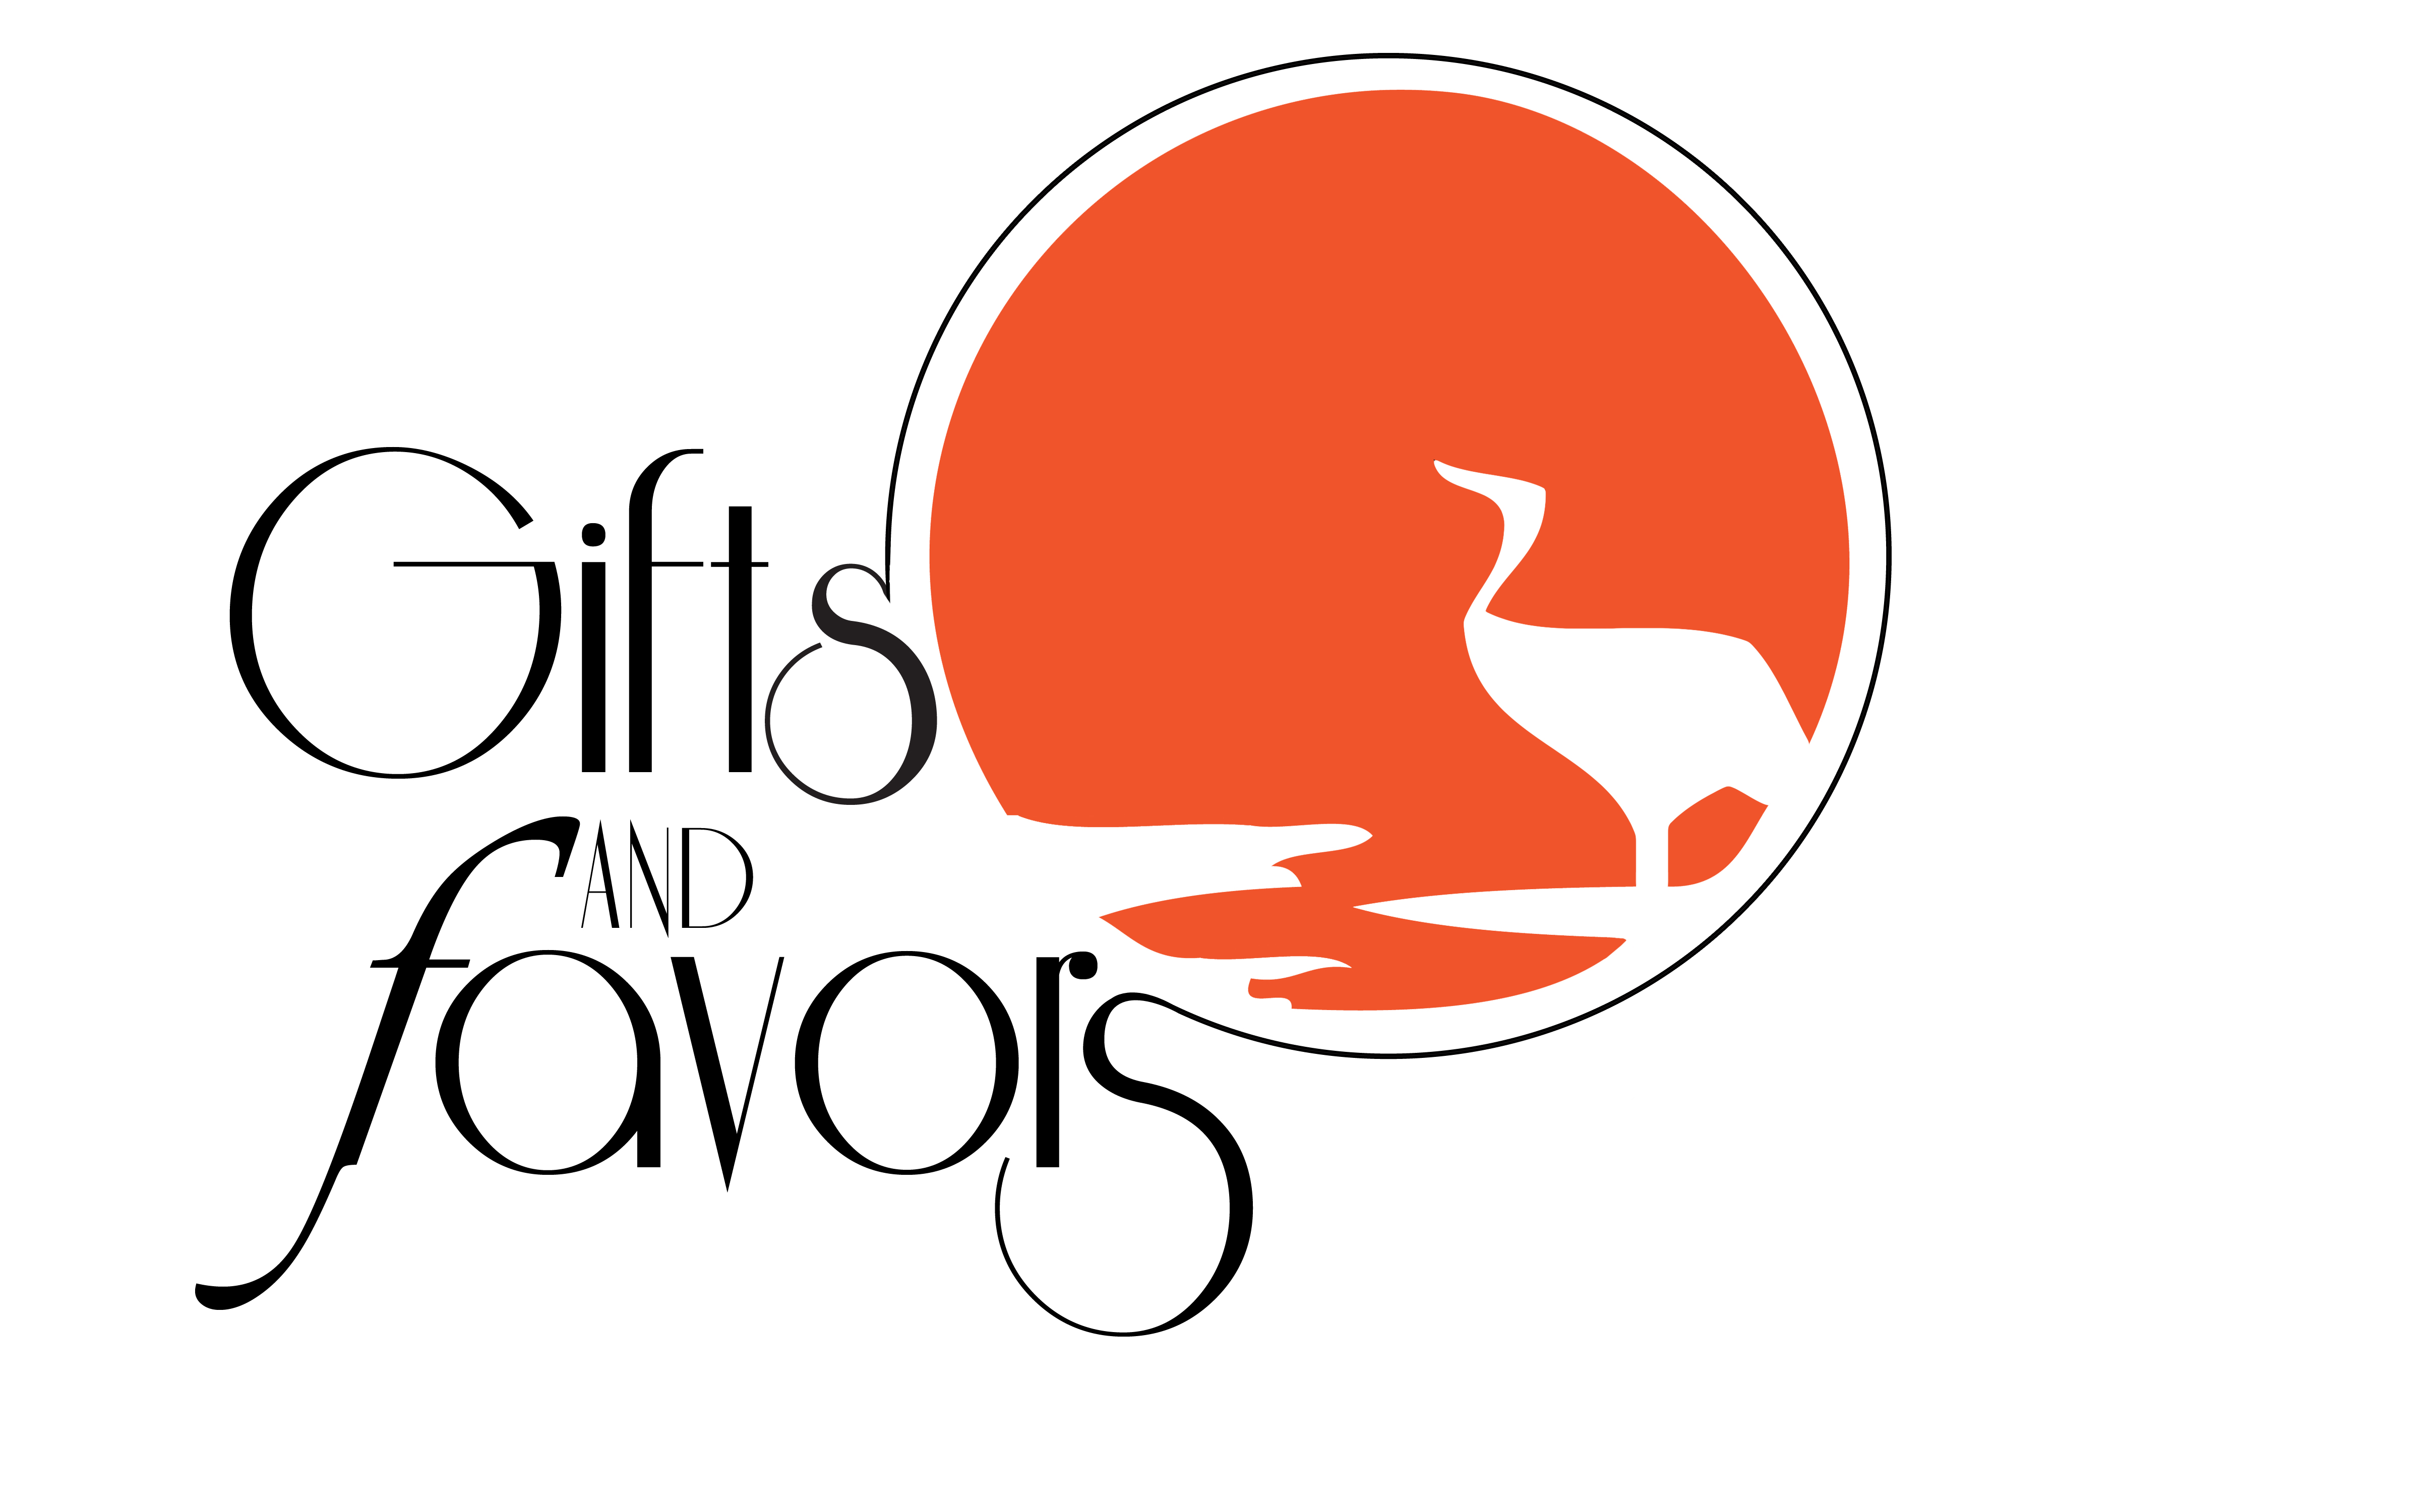 Gifts and Favors